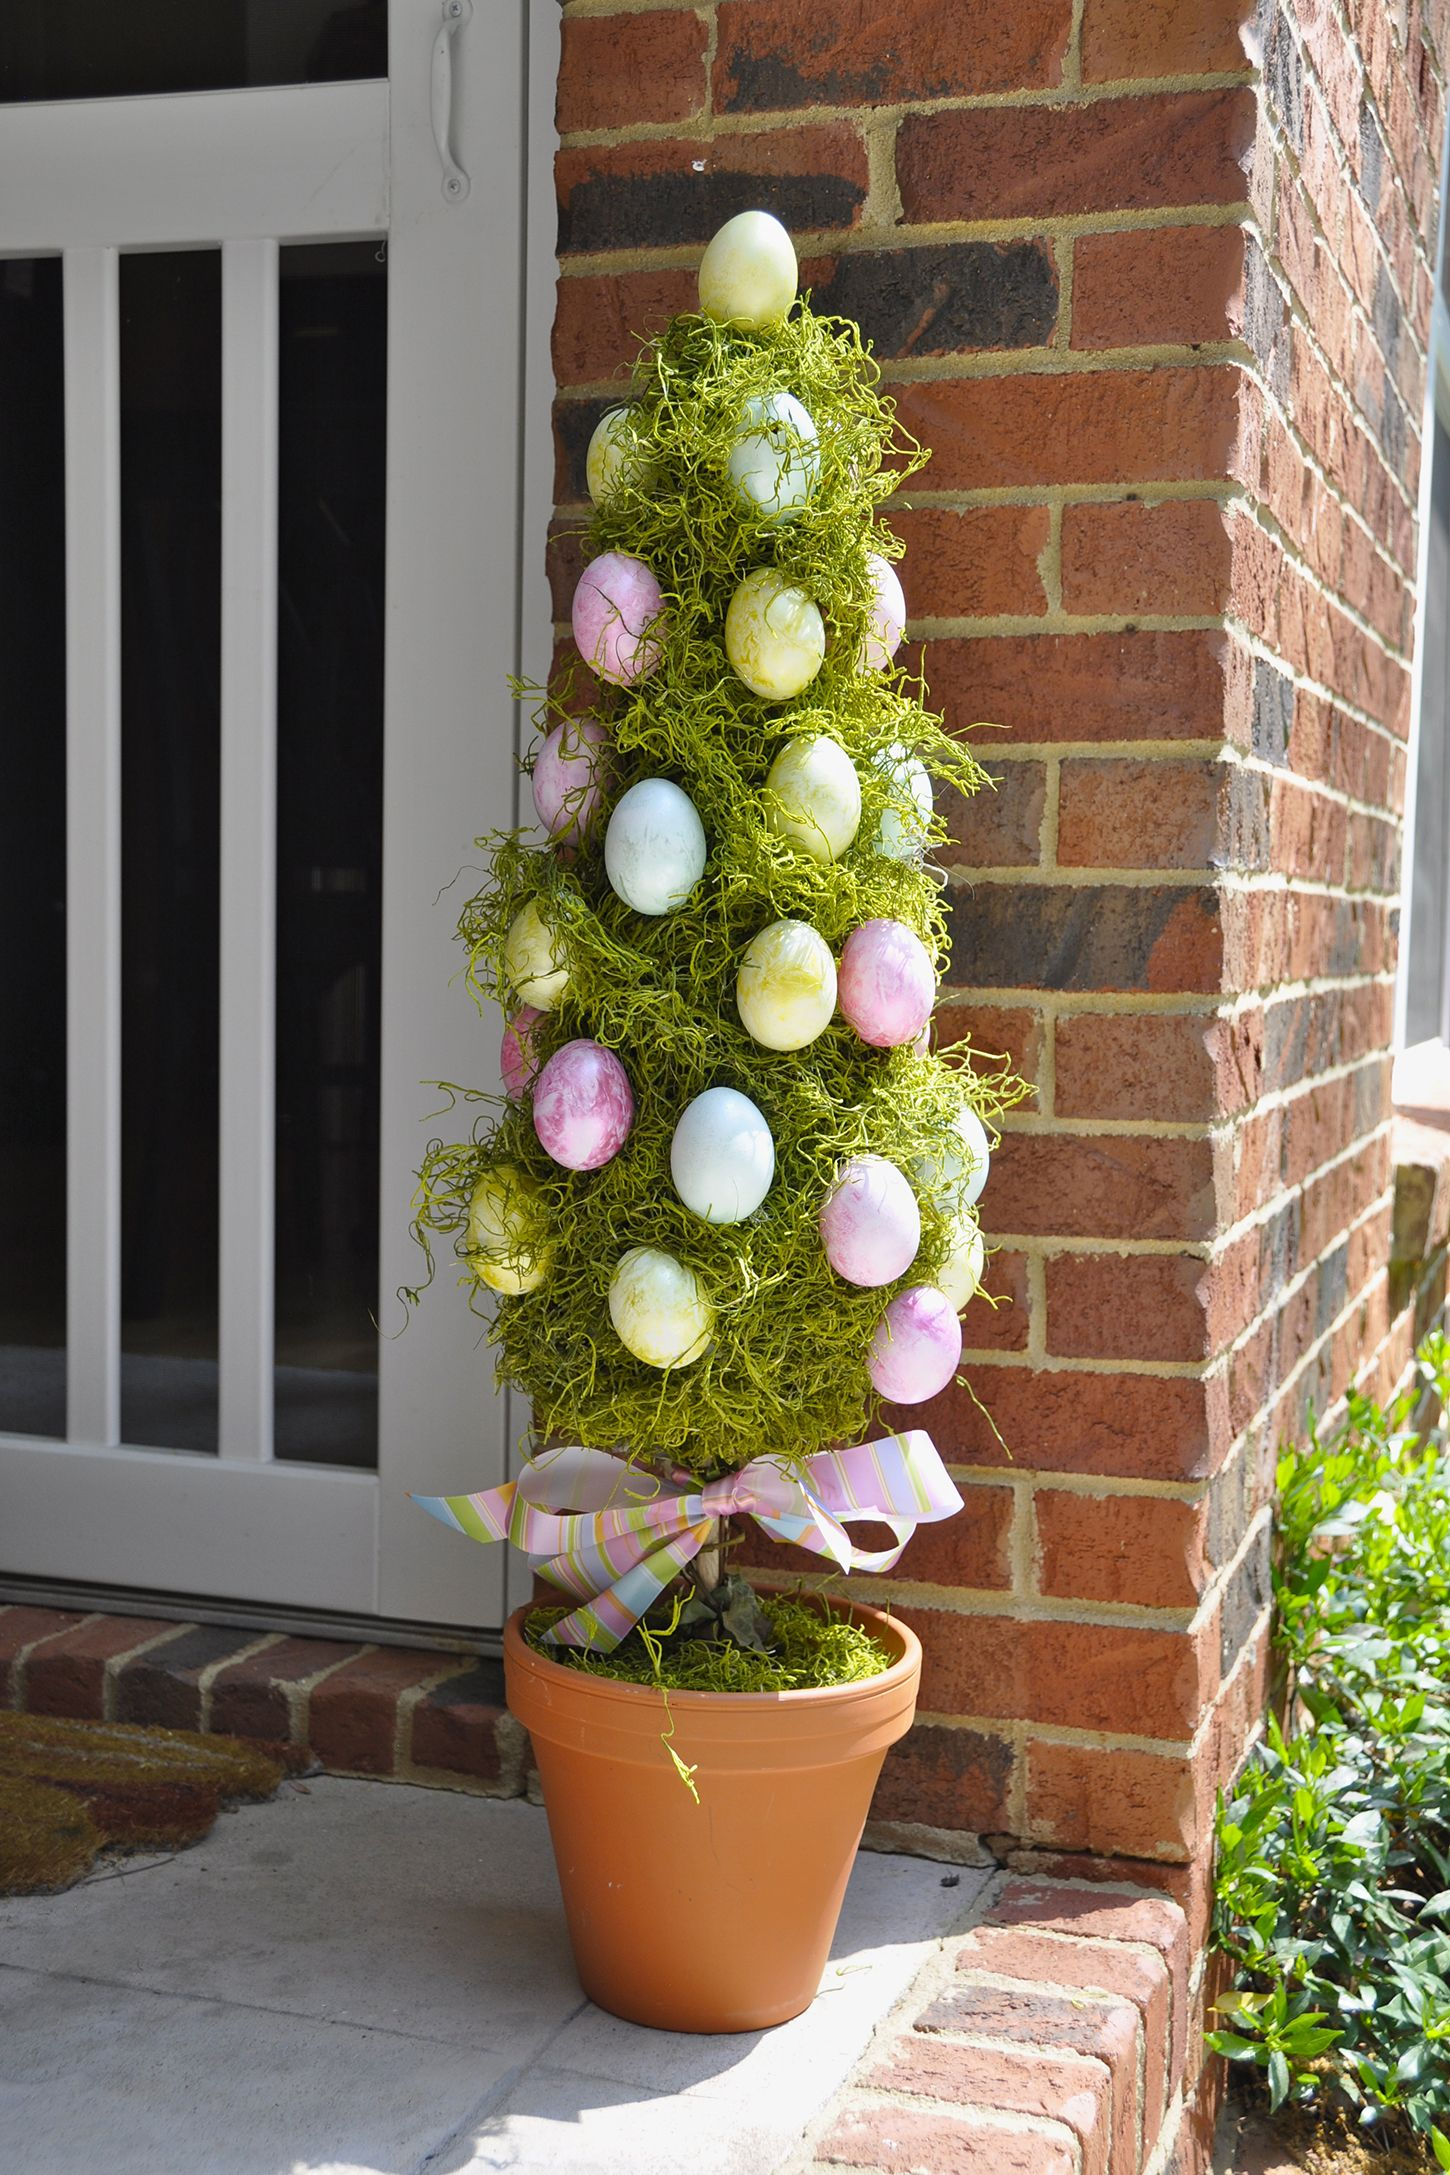 10 Easy Outdoor Easter Decorations Diy Yard Decor Ideas